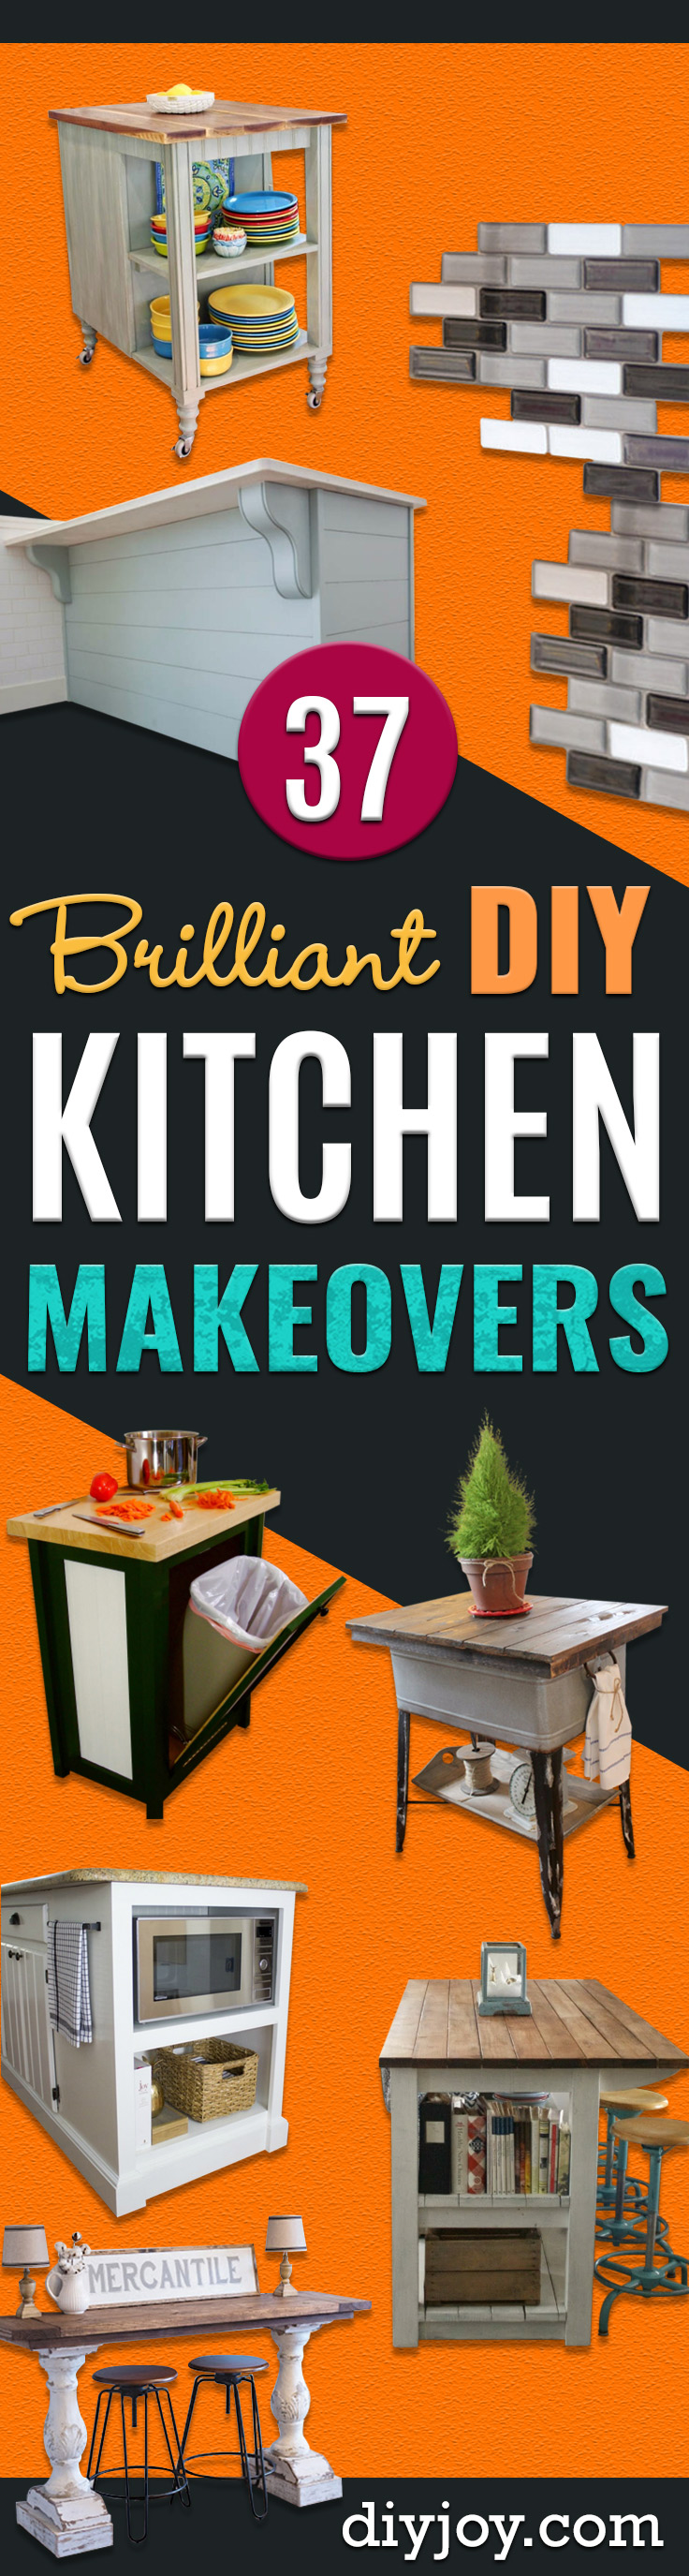 diy kitchen makeovers kitchen makeover ideas DIY Kitchen Makeover Ideas Cheap Projects Projects You Can Make On A Budget Cabinets